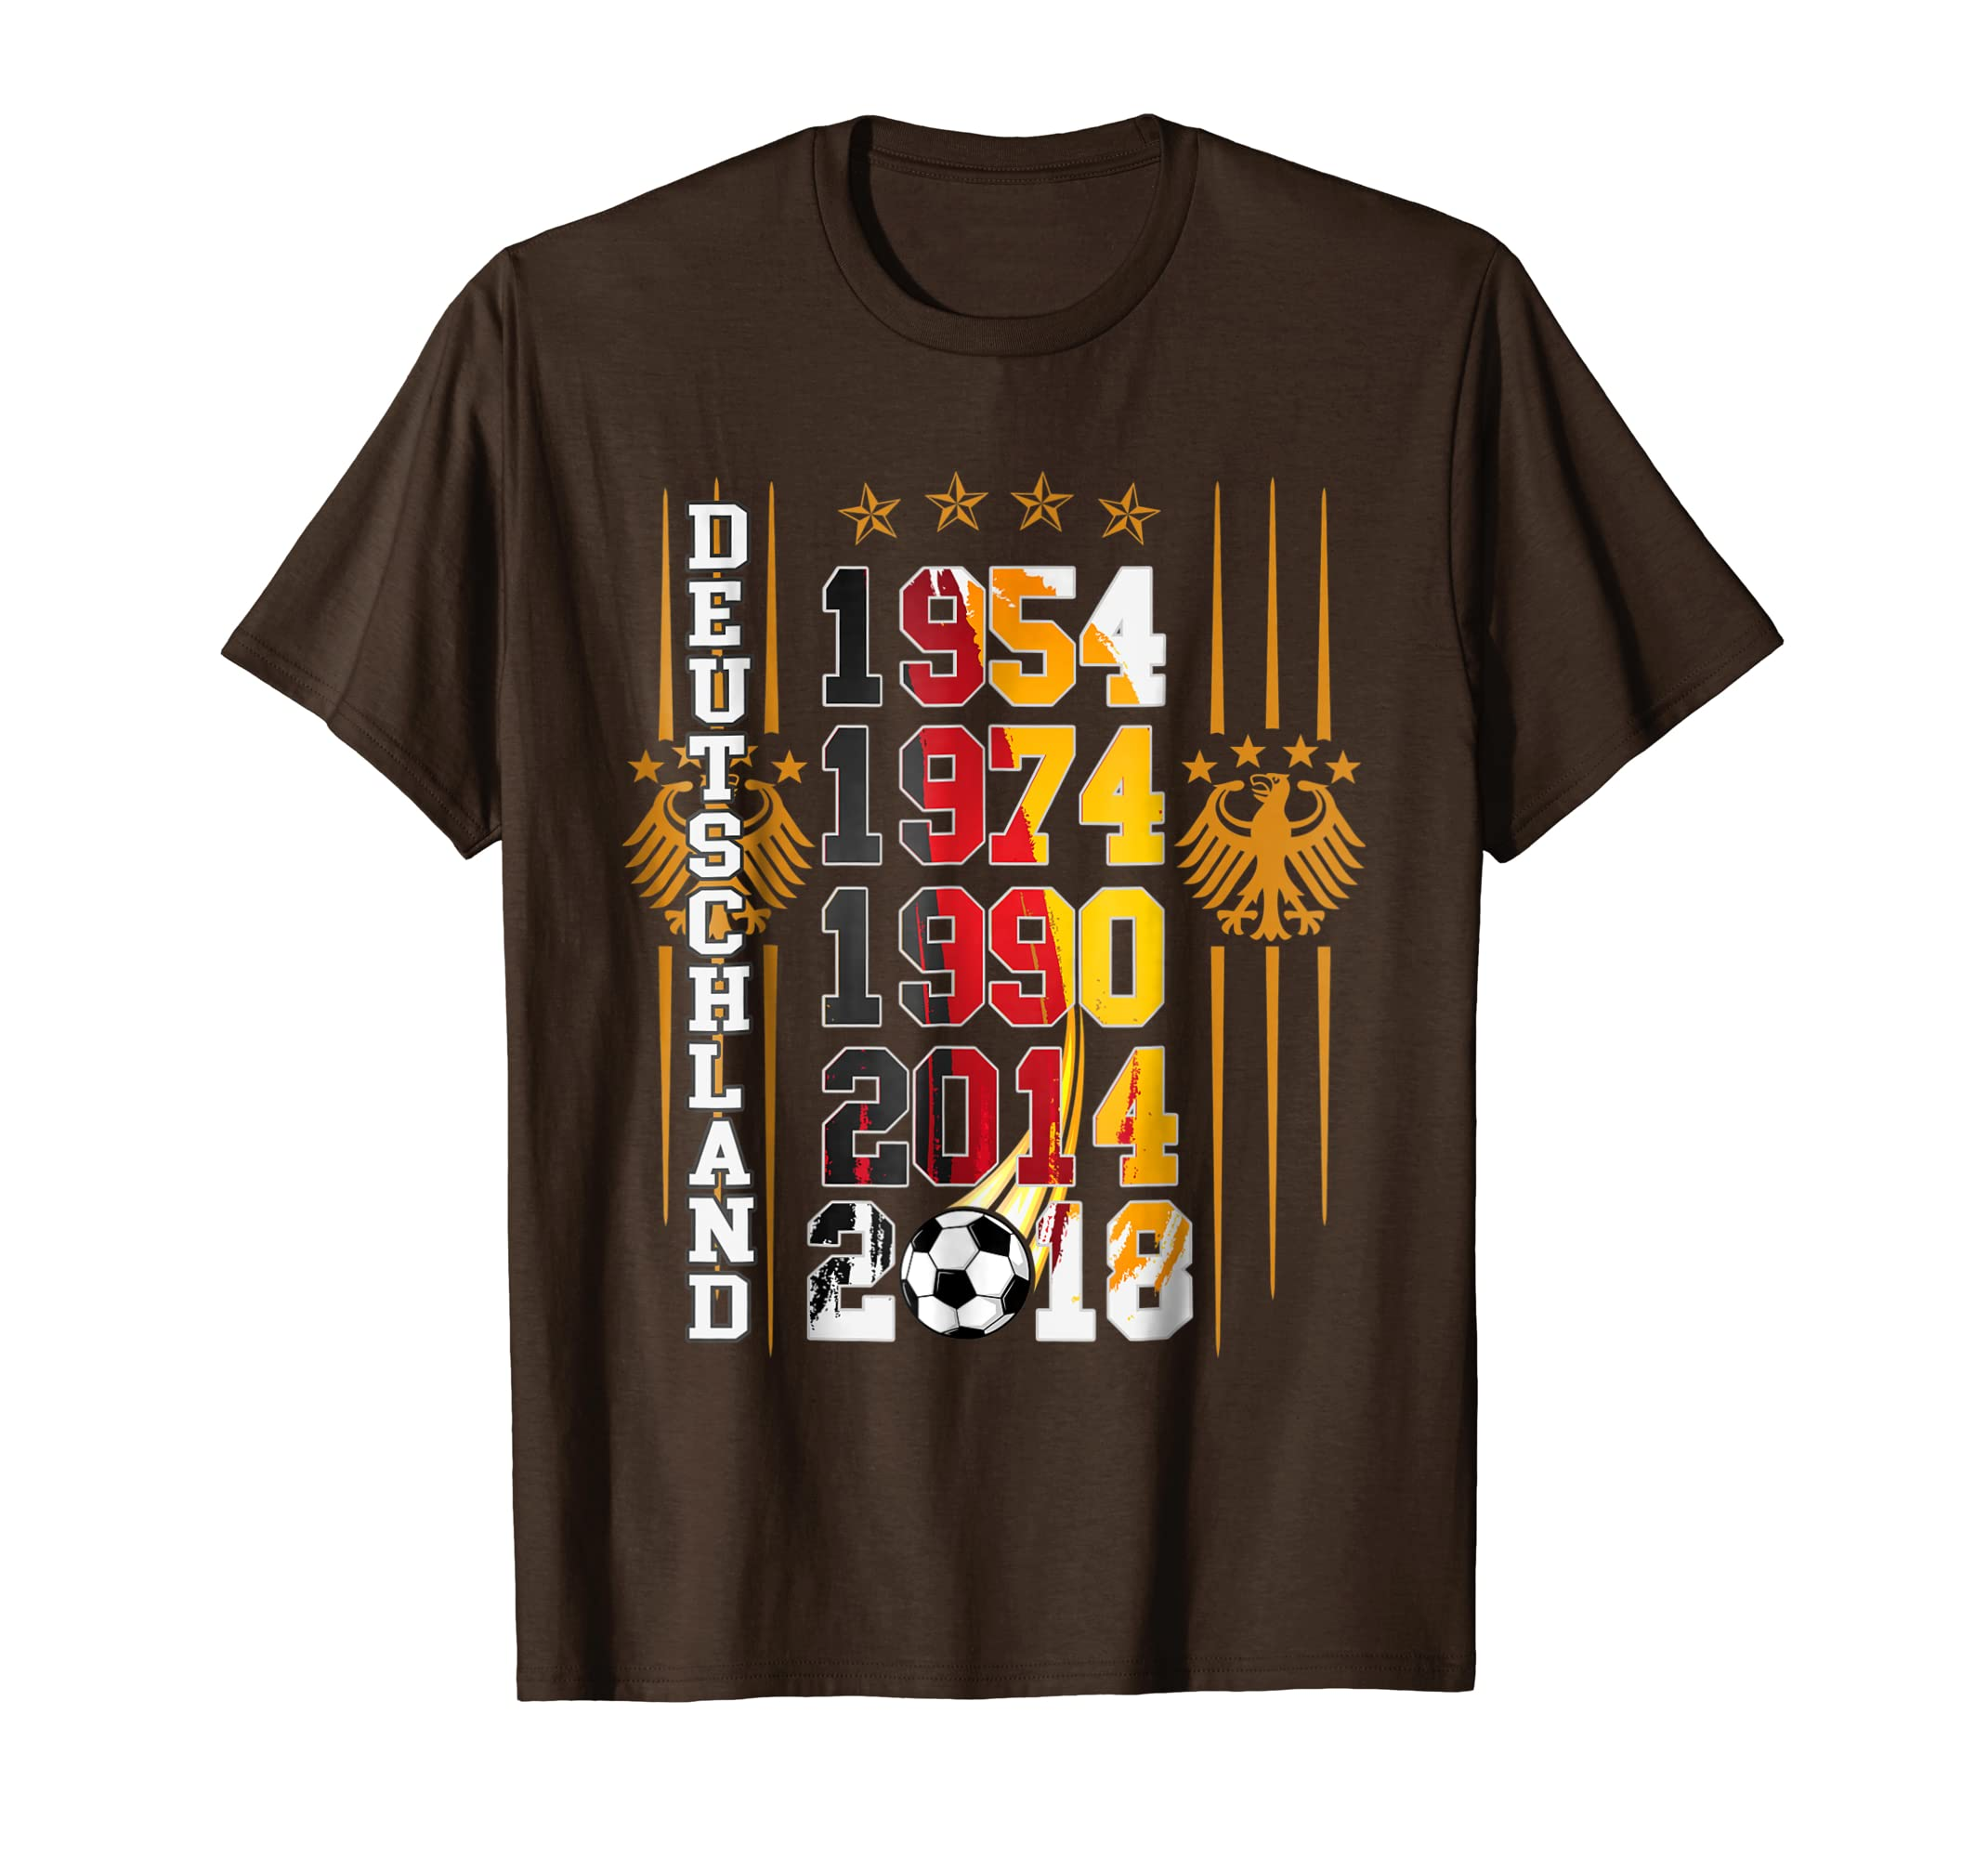 b1c76ac8b66 Germany Soccer T-Shirt with Football Championship Years-alottee gift ...